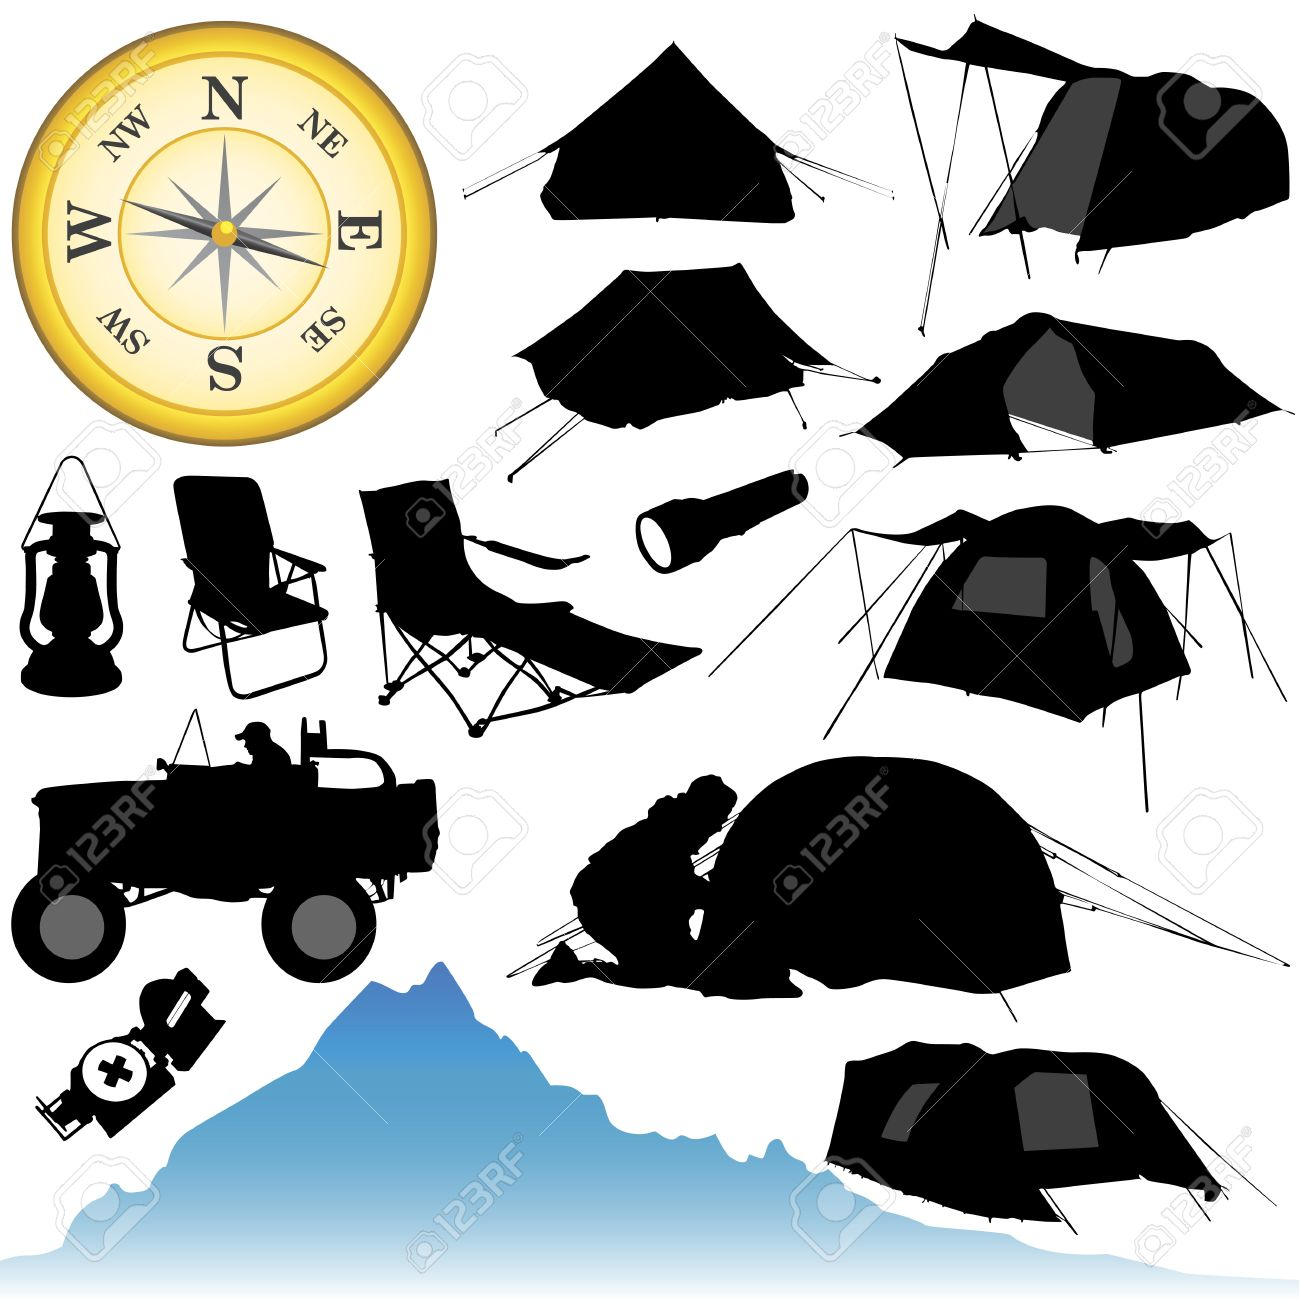 Camping And Equipments Royalty Free Cliparts, Vectors, And Stock.